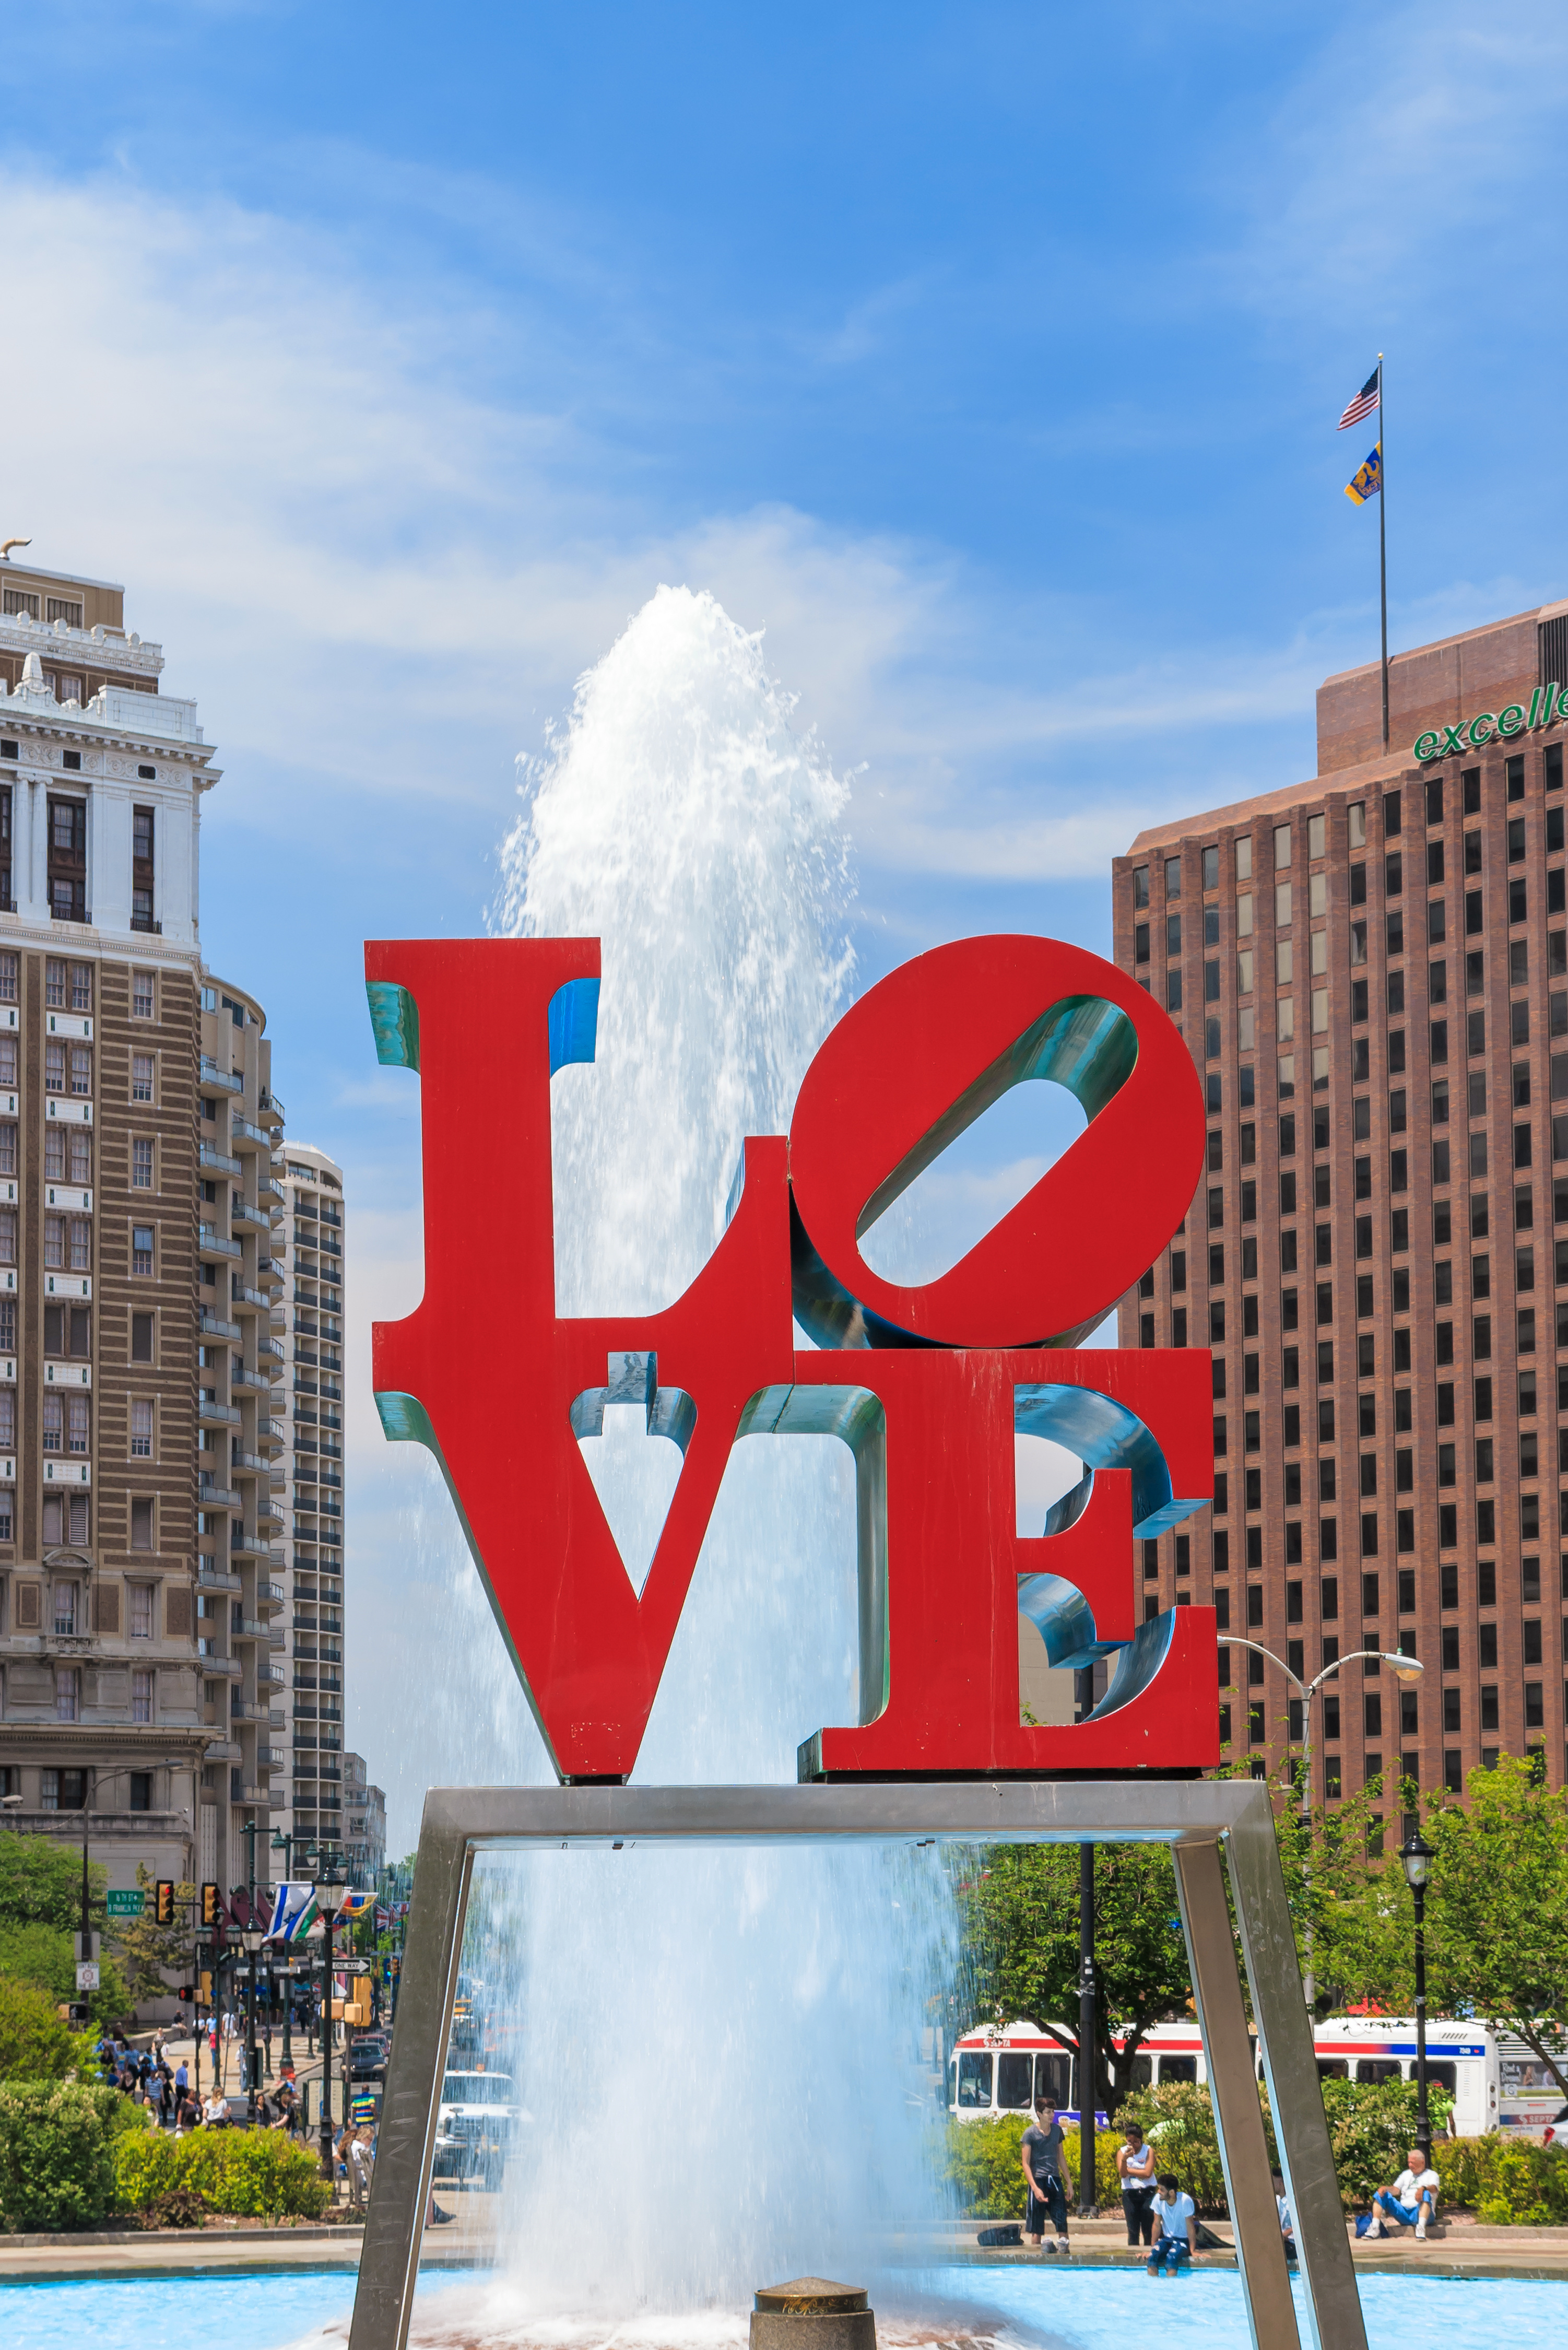 Looking for some fun things to do in Philadelphia? Try these and then tell me what are you must do's when you are in Philly.